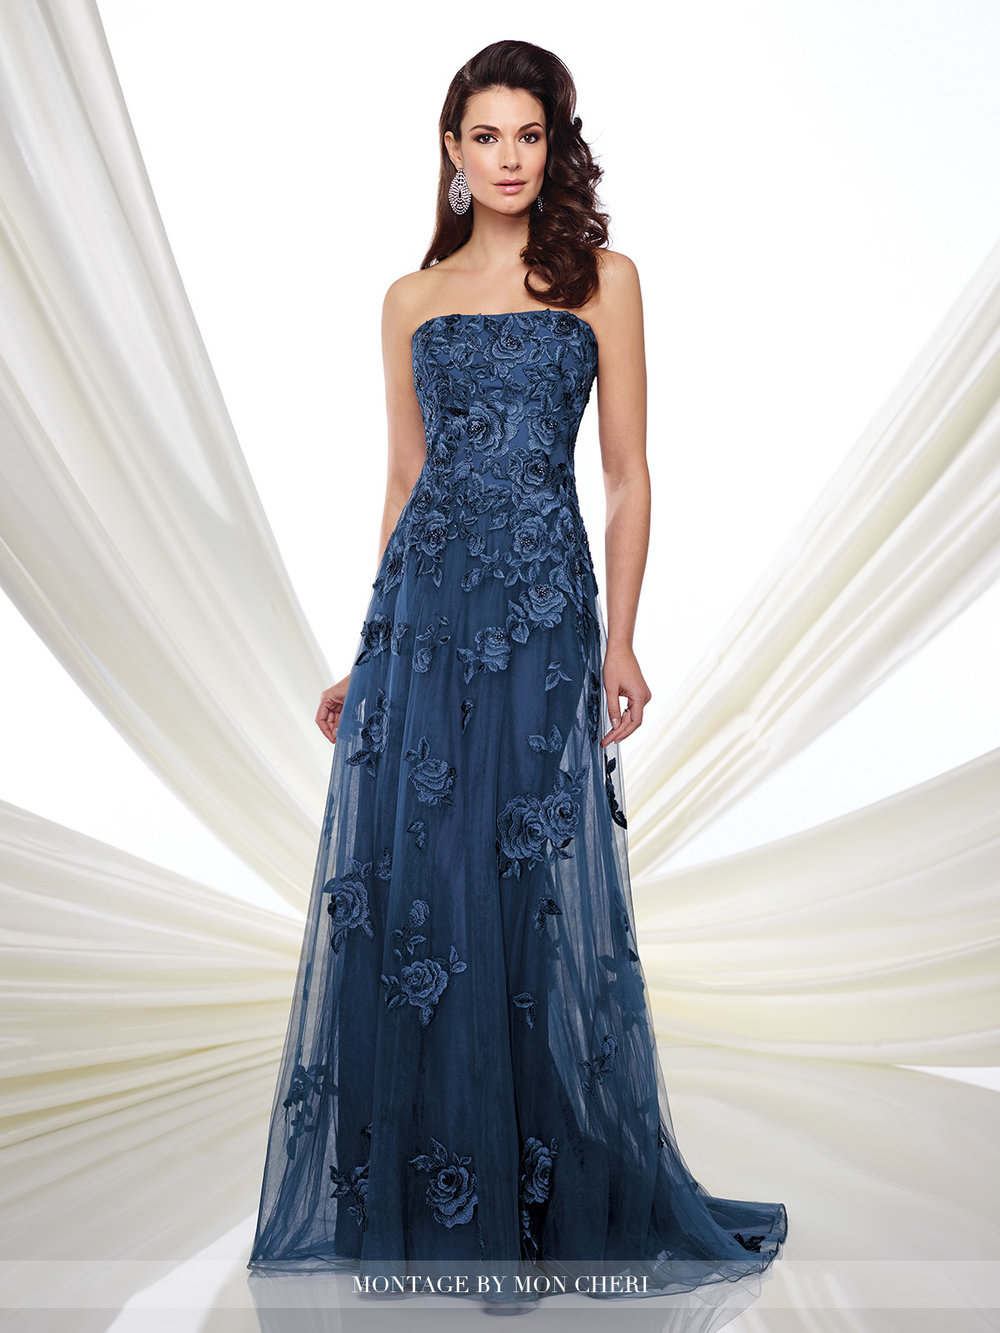 216976blue_mother_of_the_bride_dresses-1.jpg